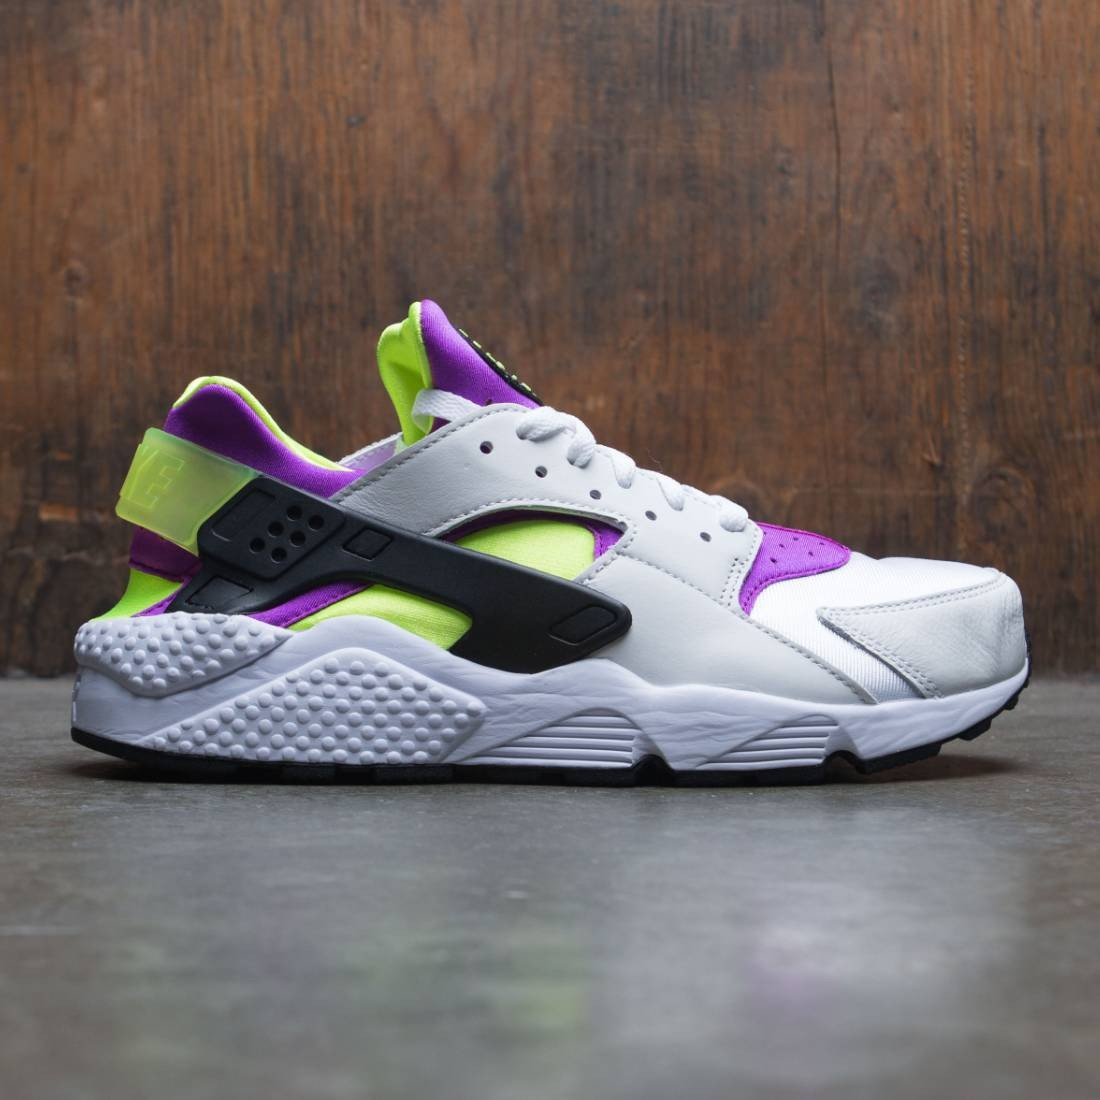 2d69bf70a01bd nike men air huarache run 91 qs white black neon yellow magenta